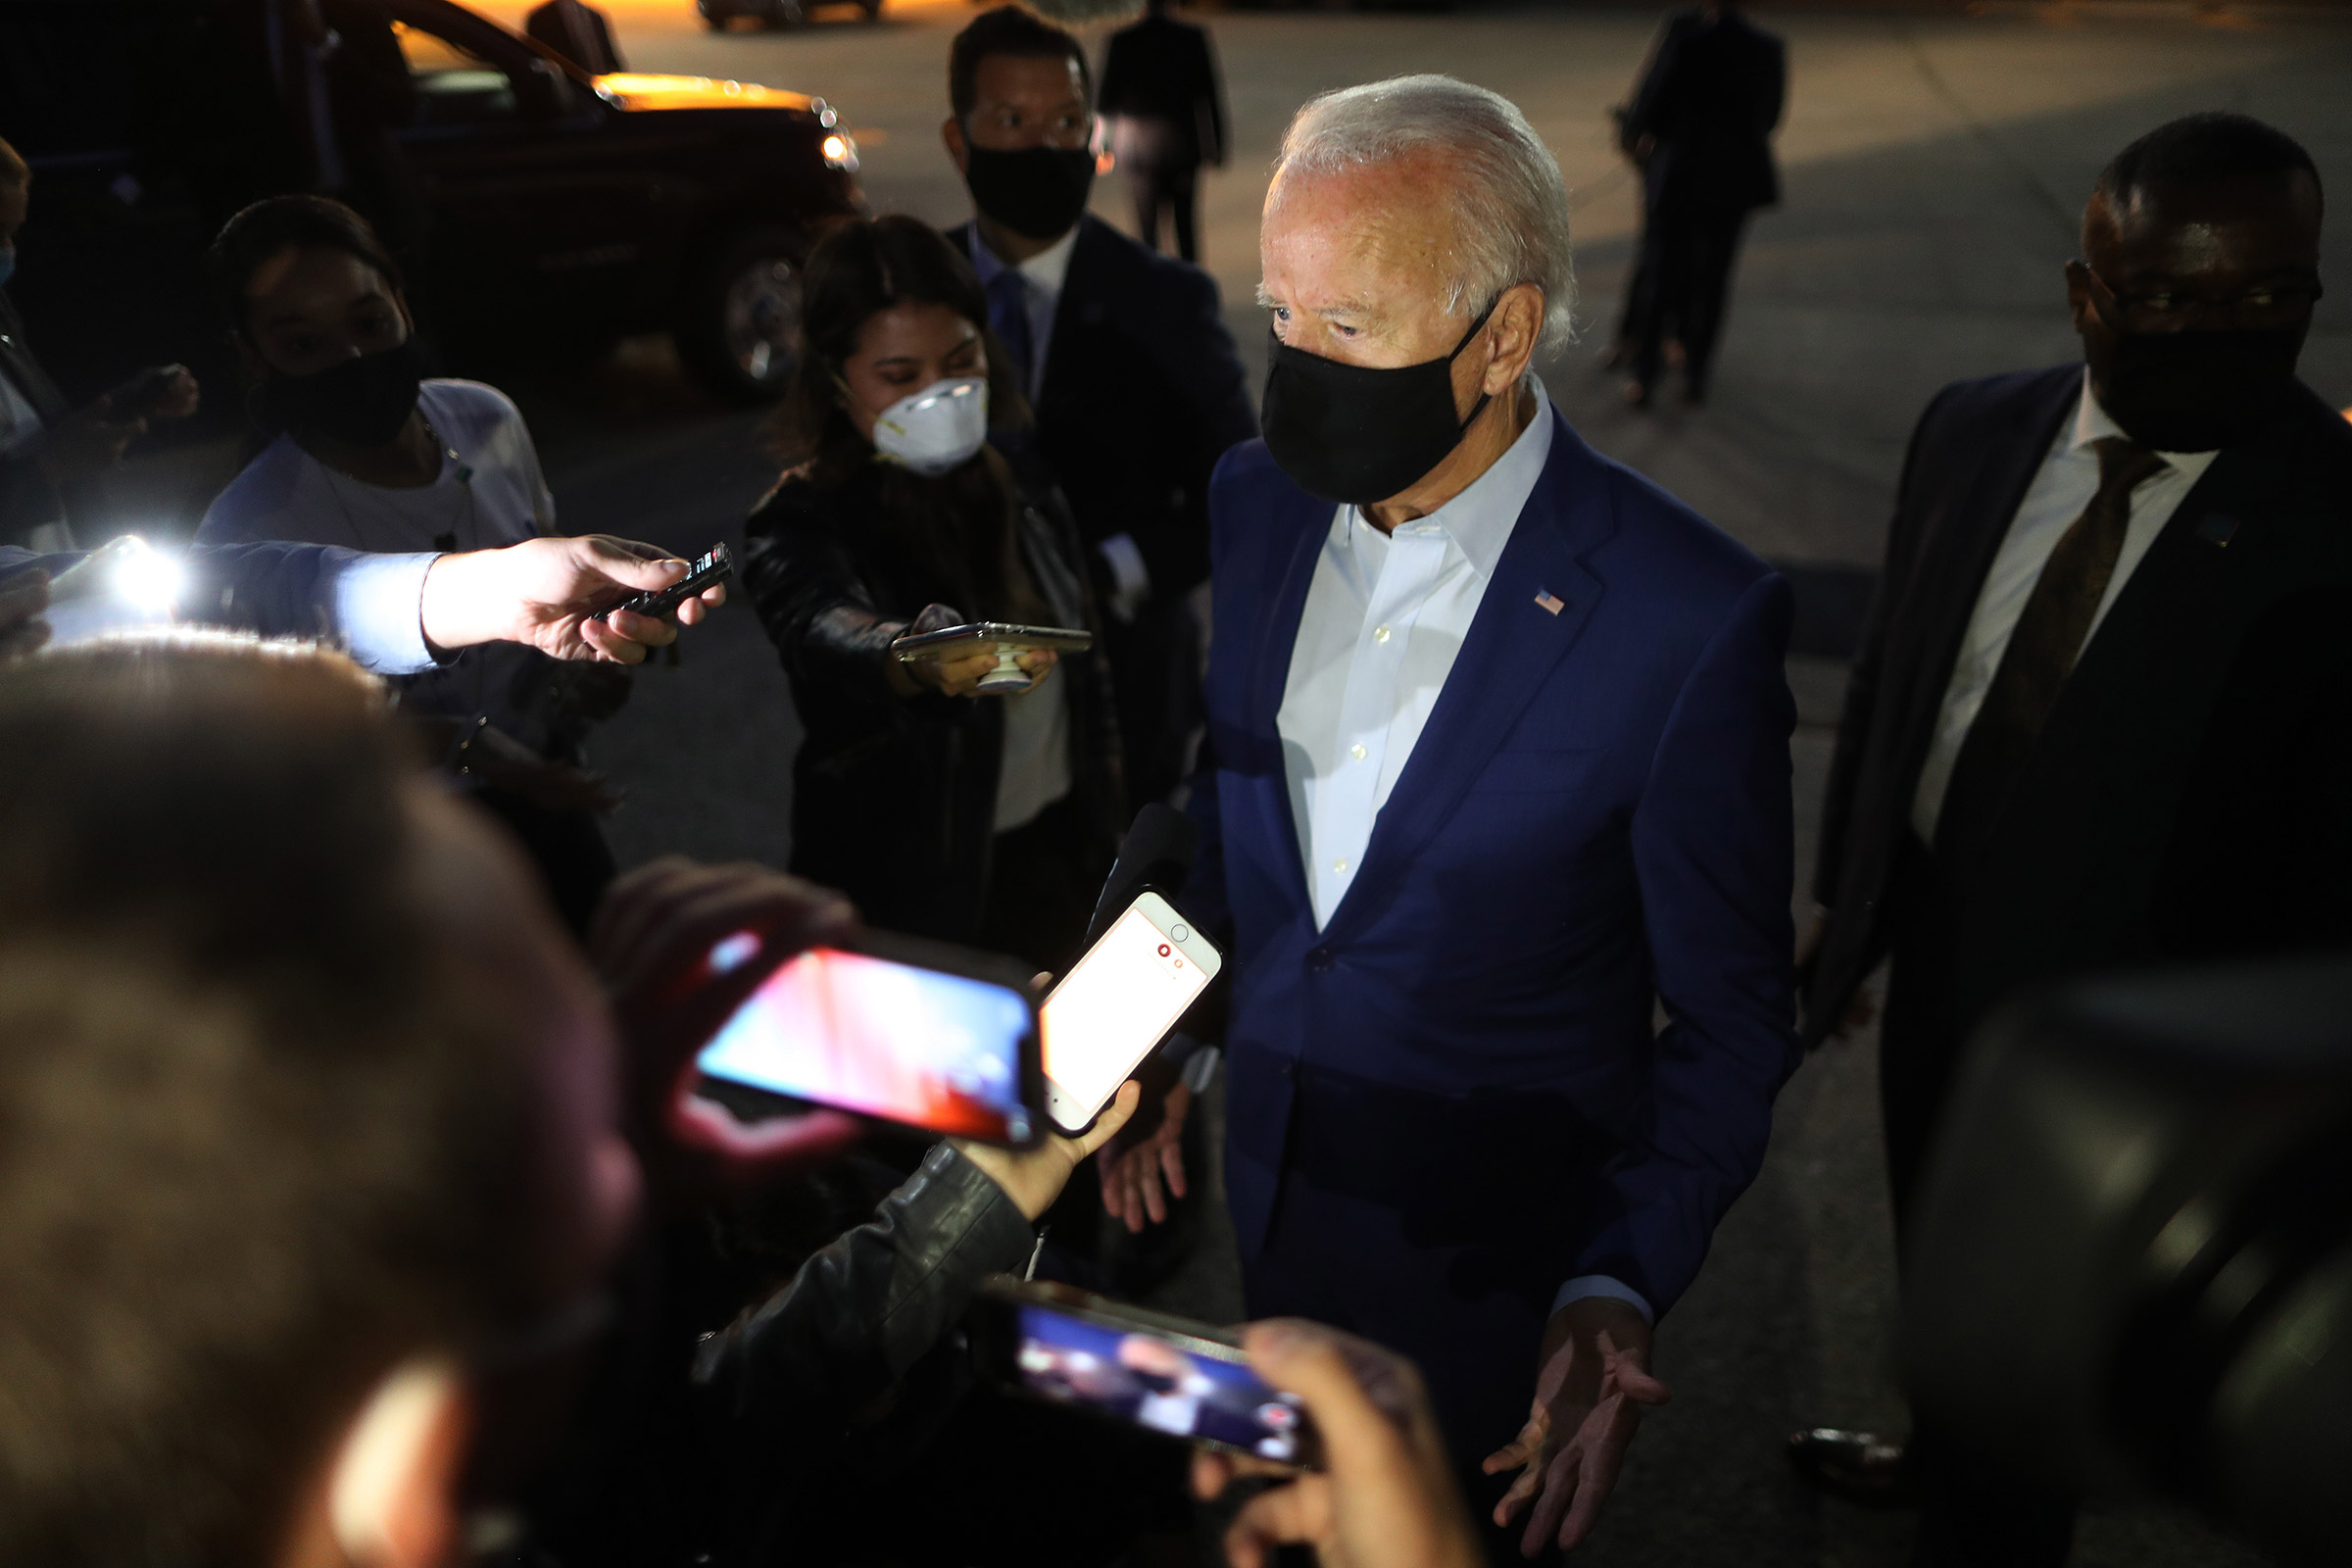 Democratic presidential nominee Joe Biden talks with journalists before departing the Detroit Metro area in Romulus, Mich., on Sept. 09, 2020. Biden was campaigning in Michigan, which President Donald Trump won in 2016 by less than 11,000 votes, the narrowest margin of victory in state's presidential election history.